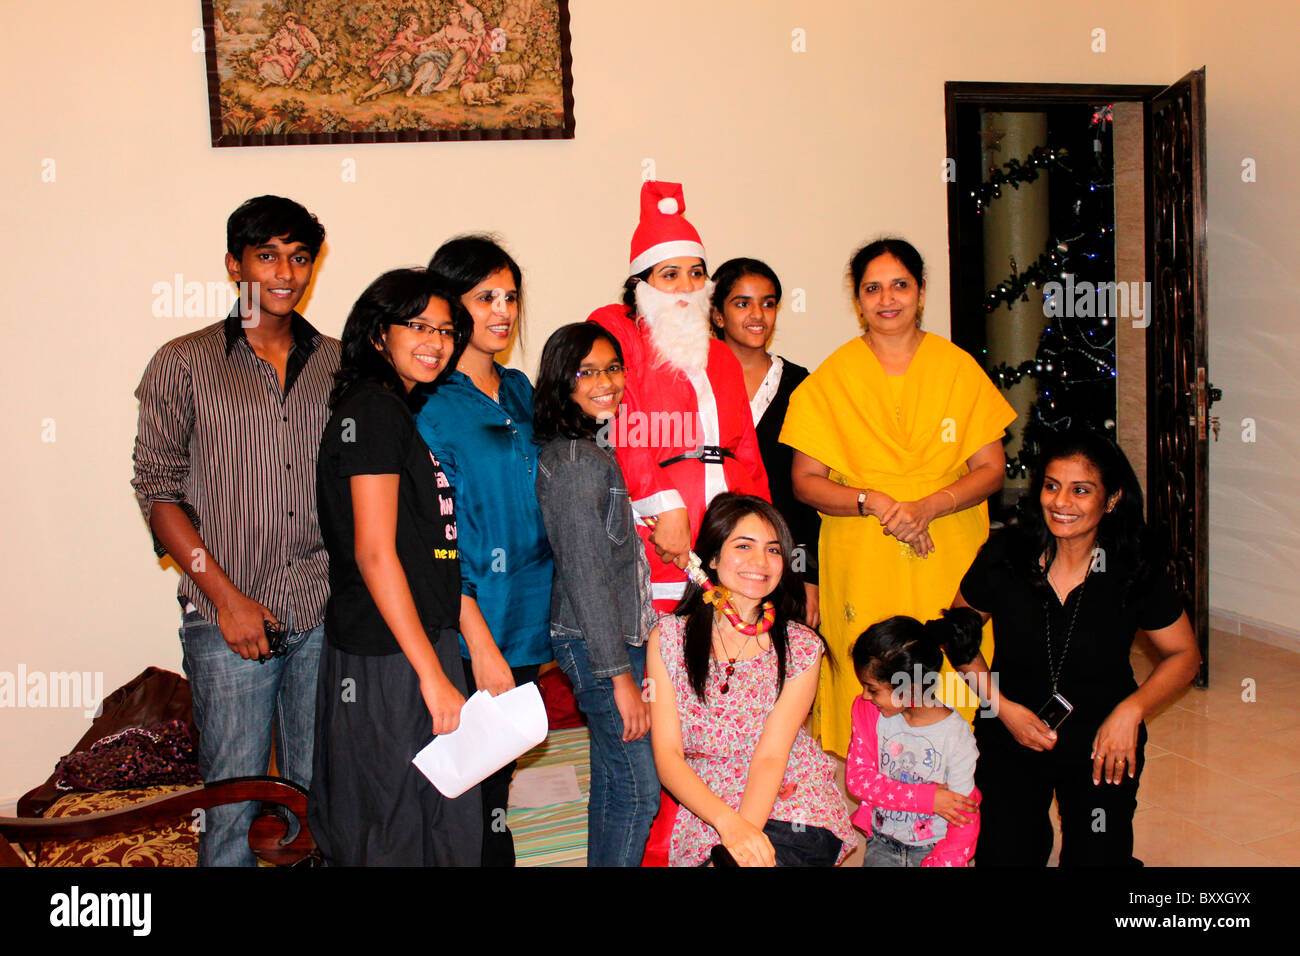 christmas celebration by an indian family stock image - Do They Celebrate Christmas In India